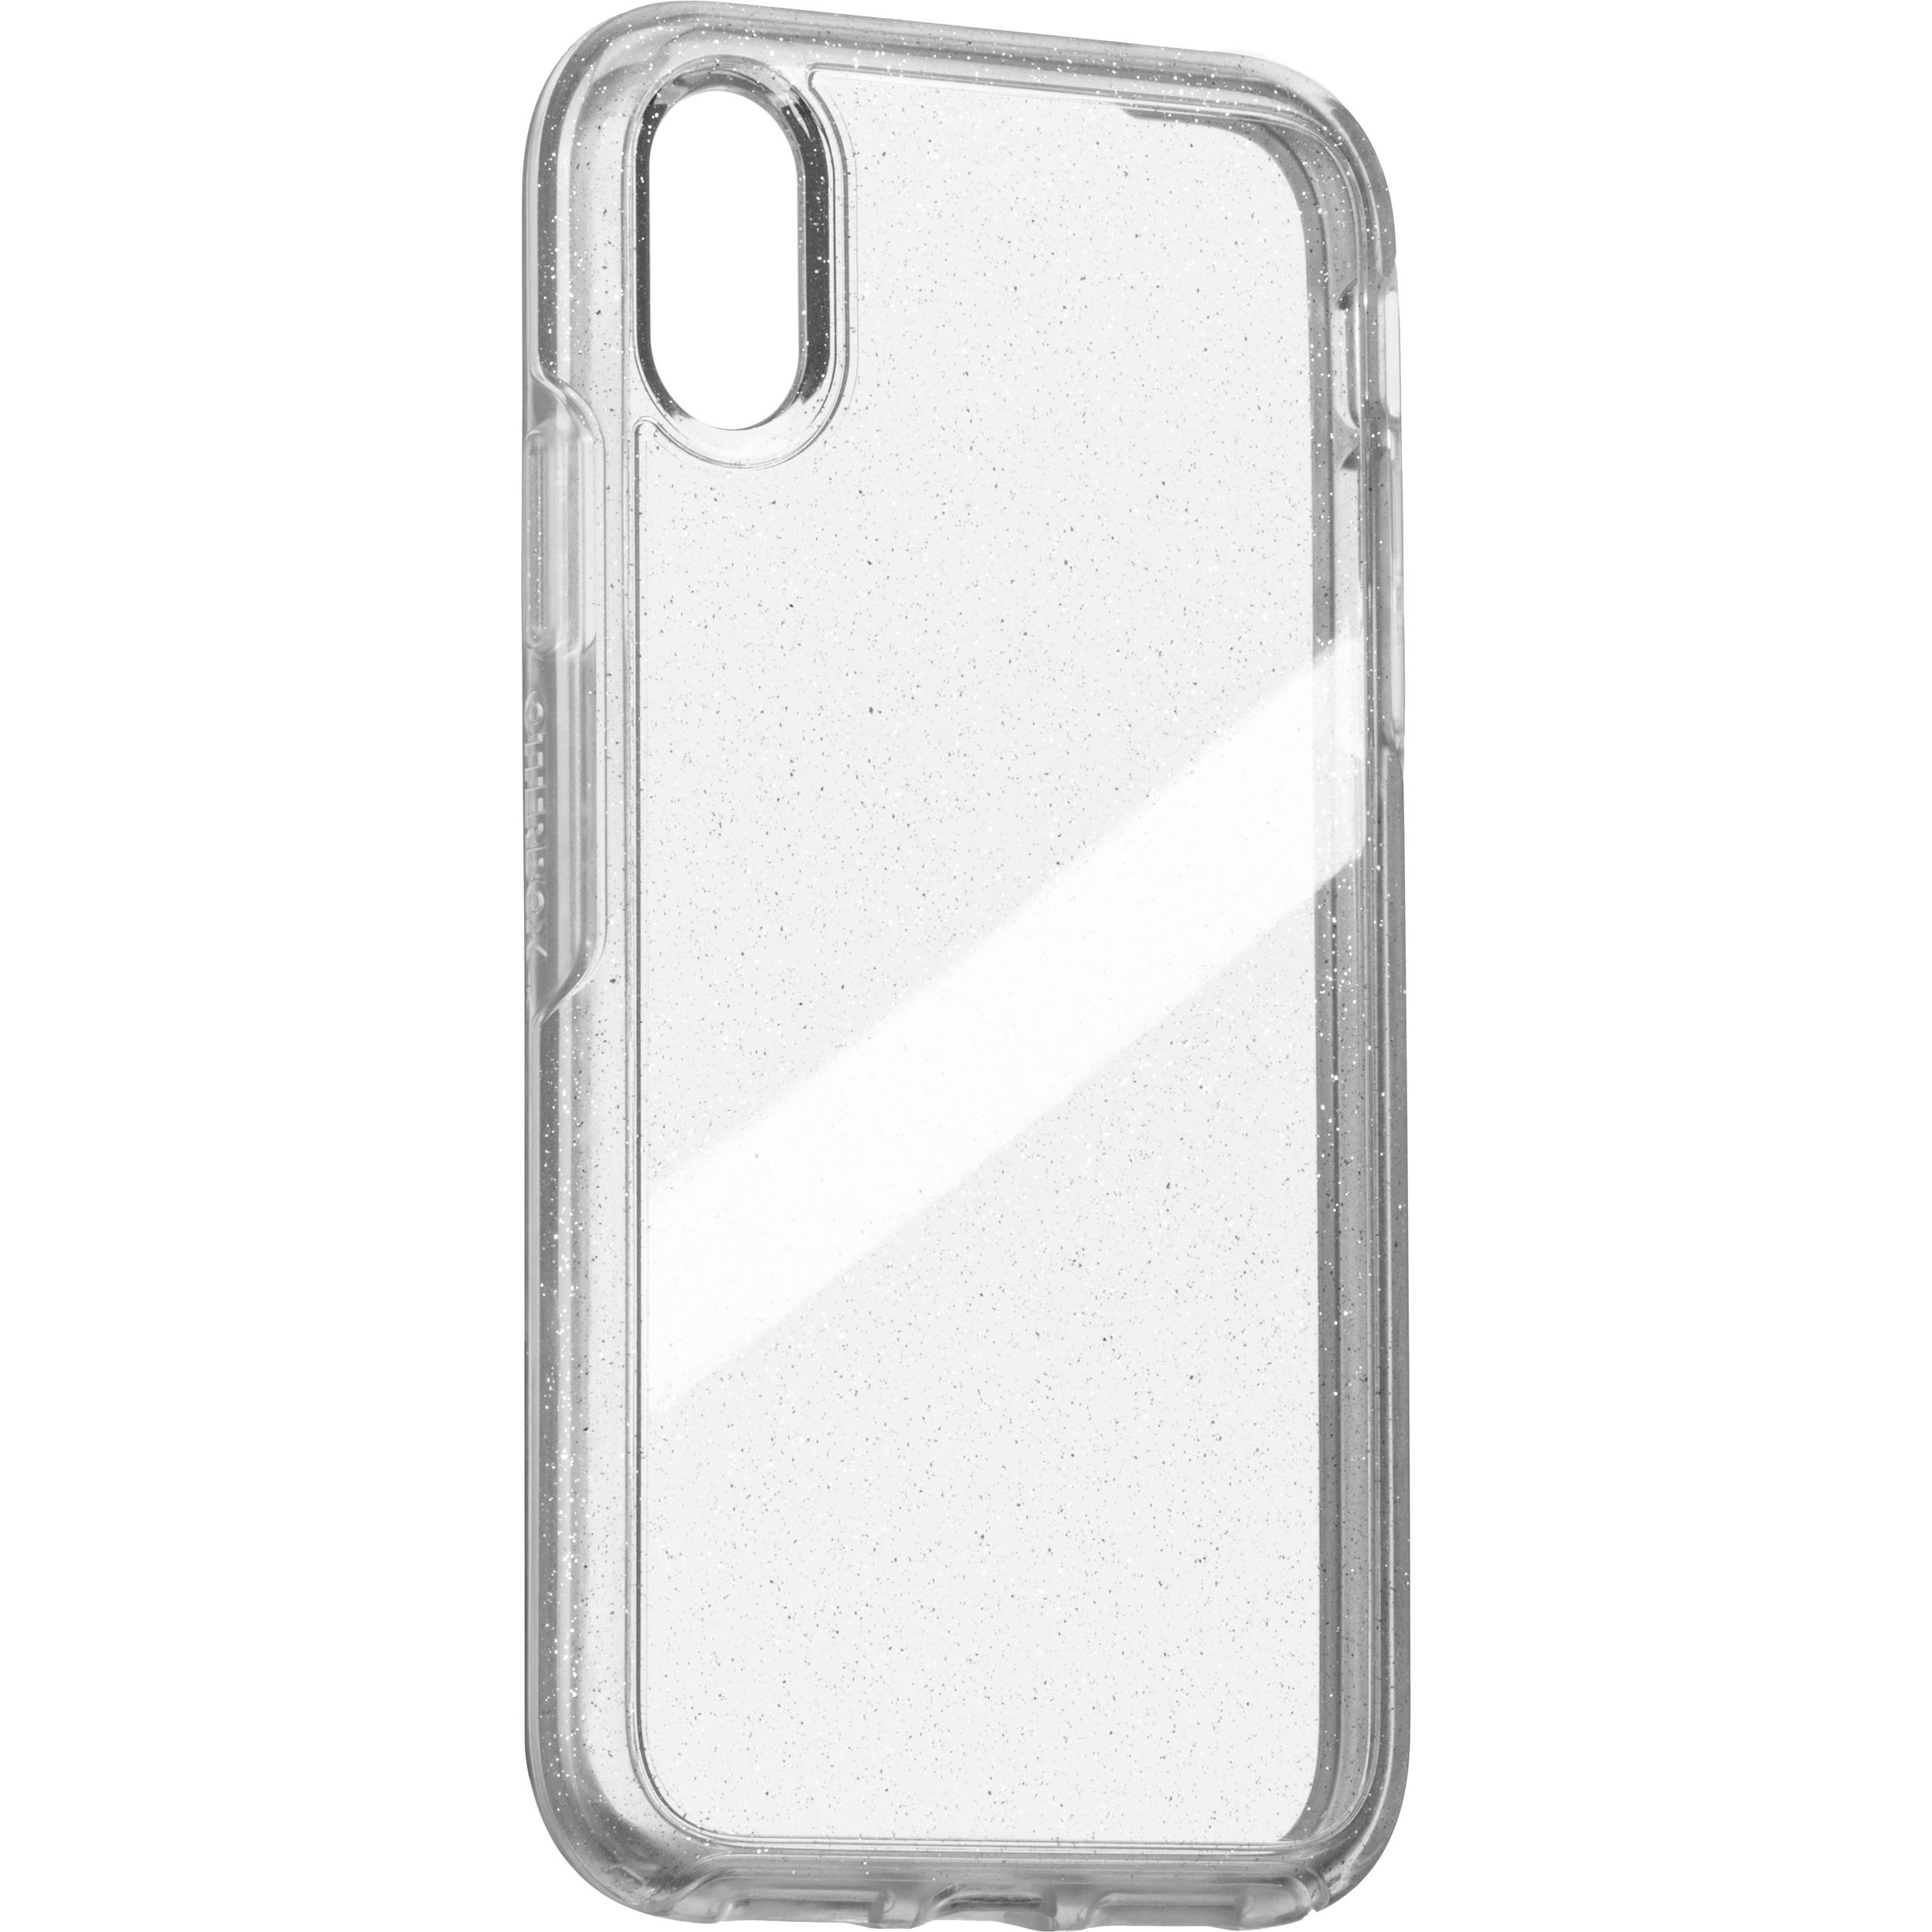 Clear cases for iphone xr